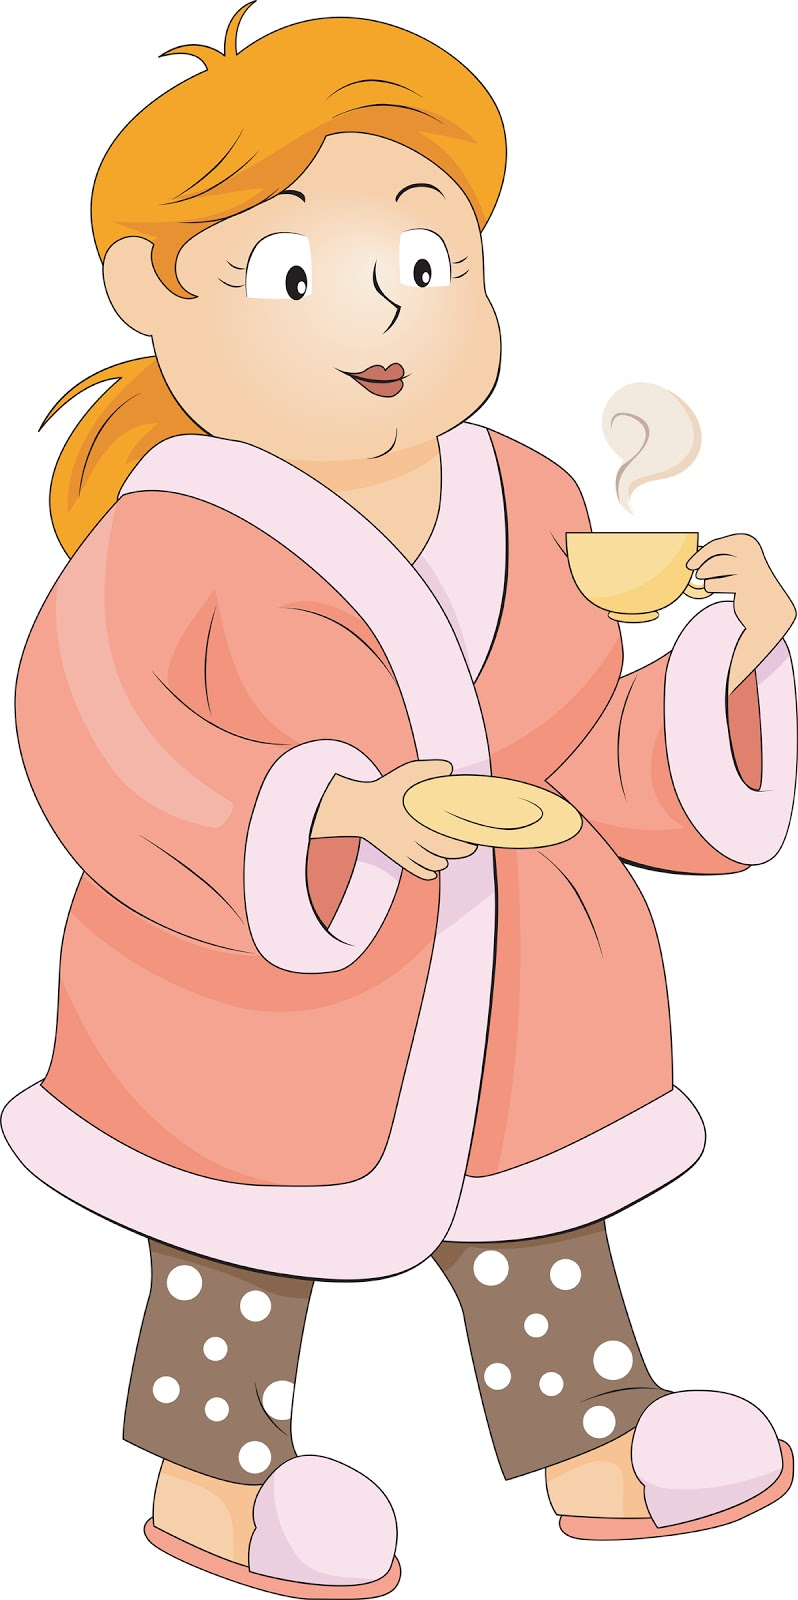 Put On Pajamas Clipart Another Thing Have To Change.